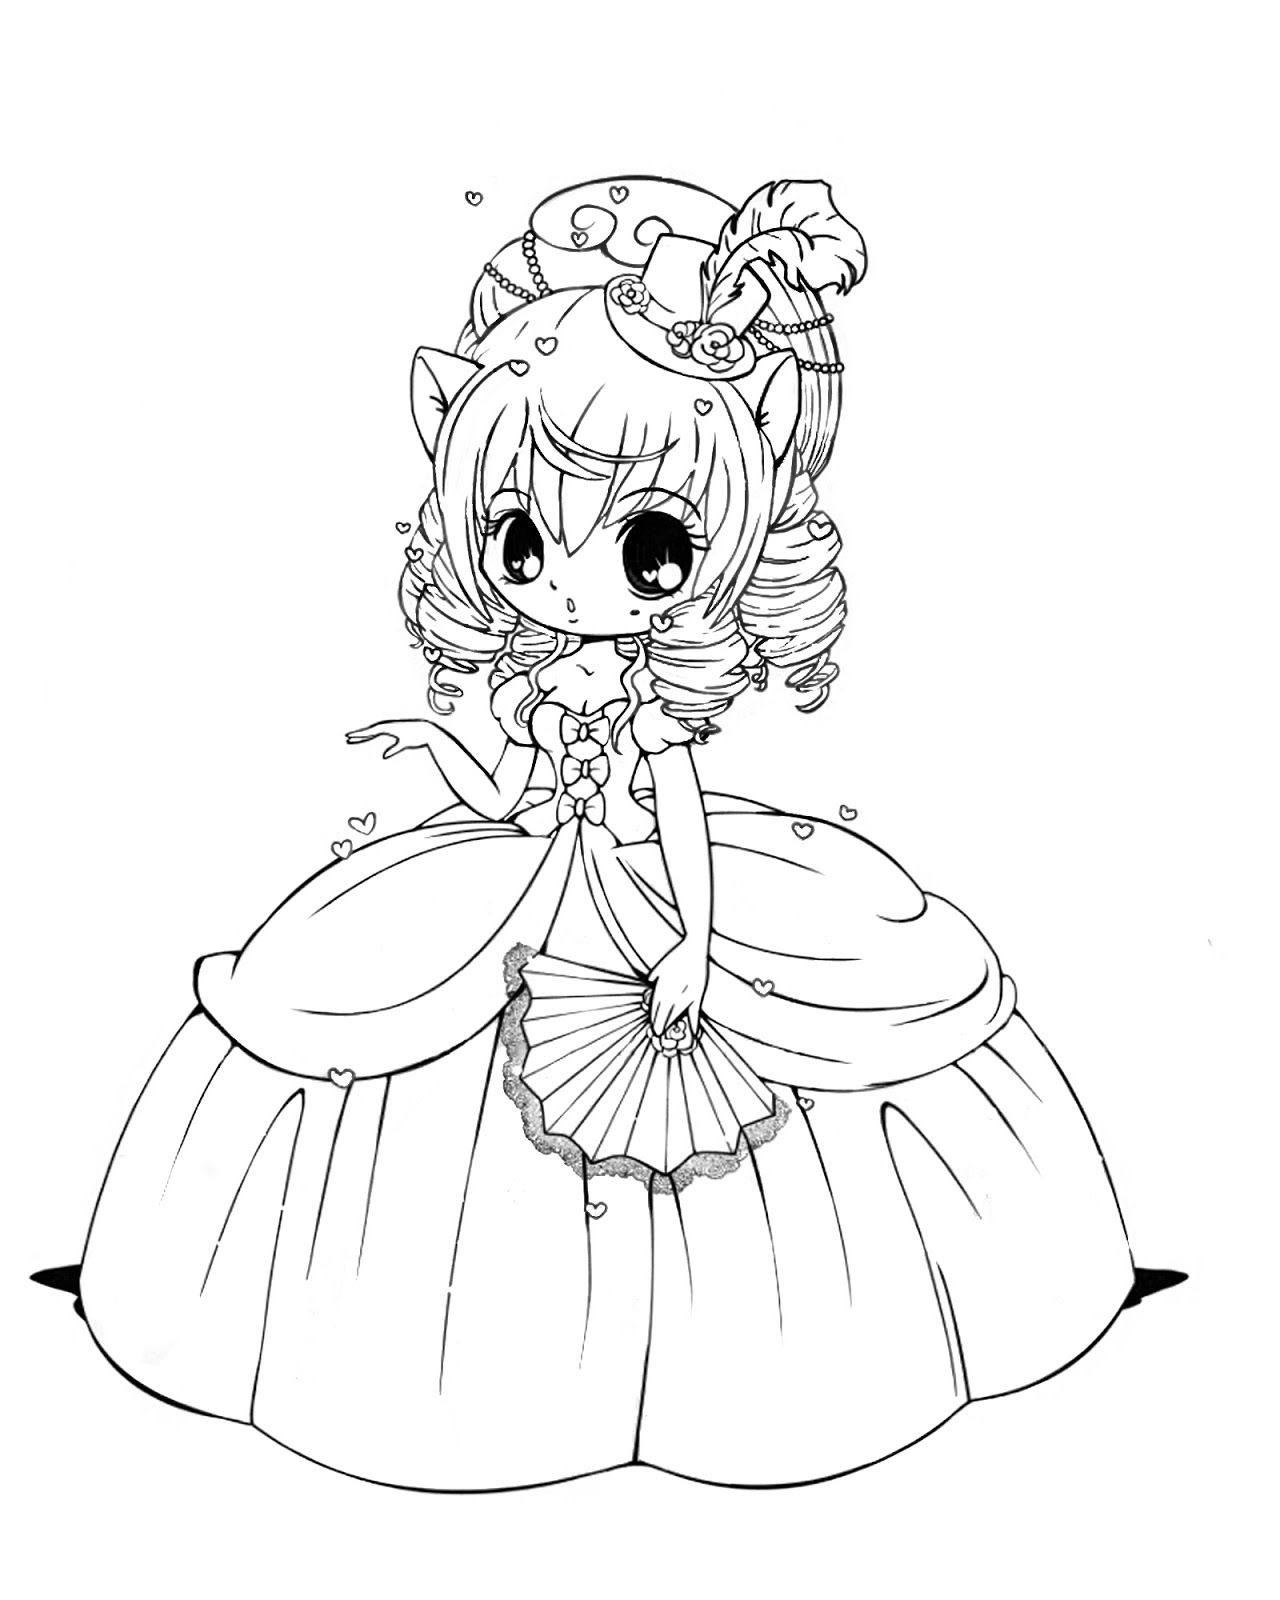 Quirky Artist Loft Sweet Lolita Coloring Pages wedding ideas